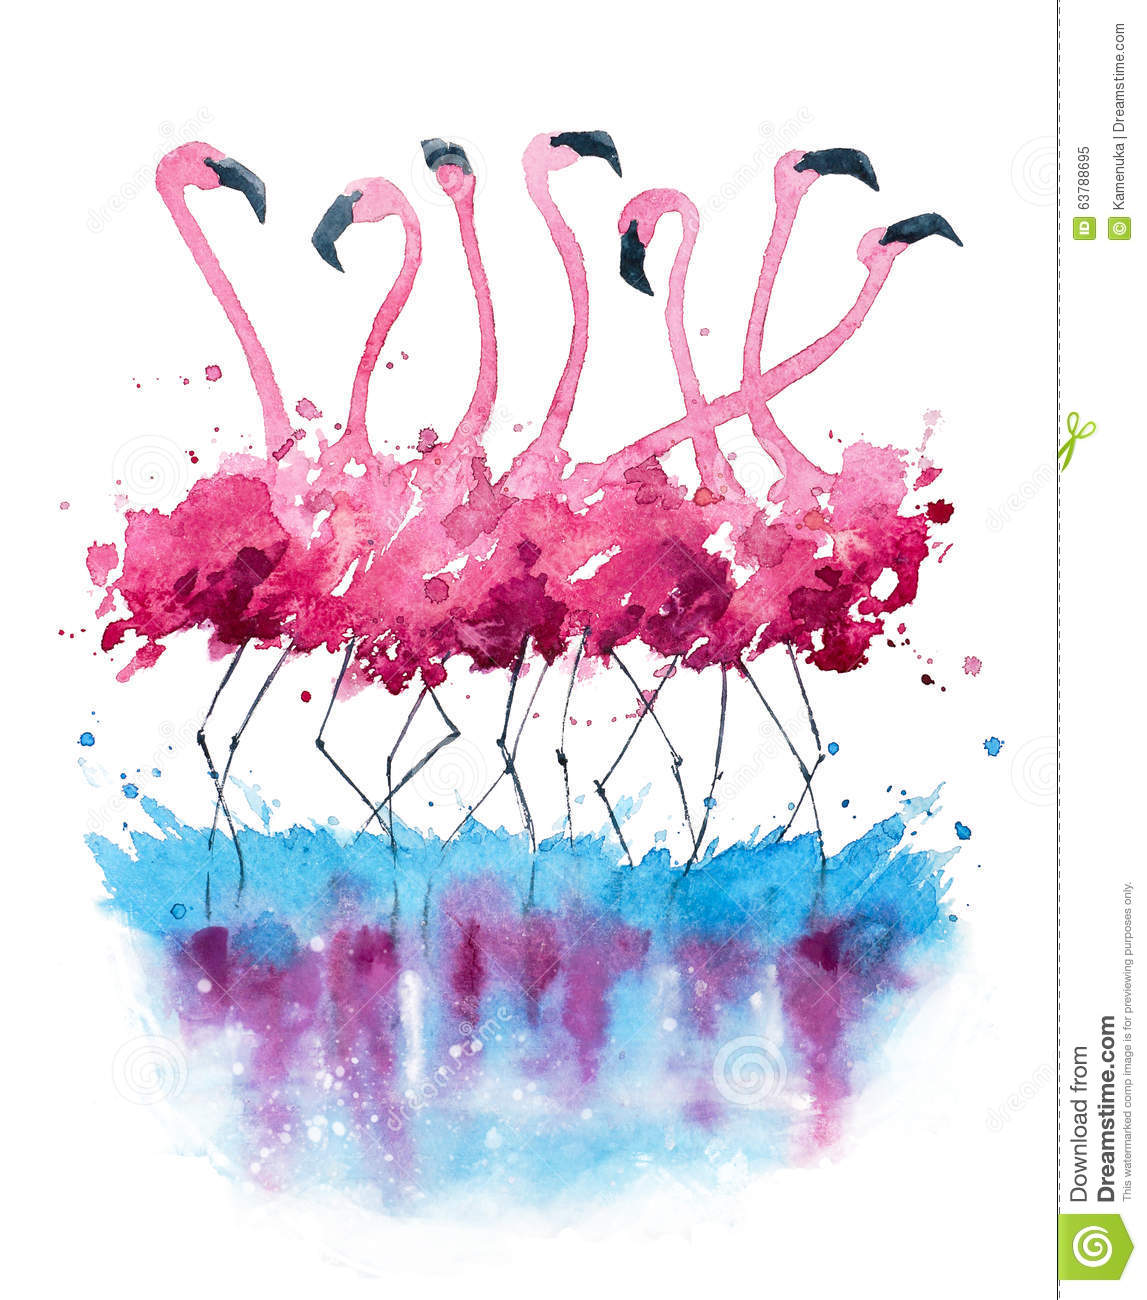 Flamingos watercolor painting stock illustration image for Watercolor paintings of hands